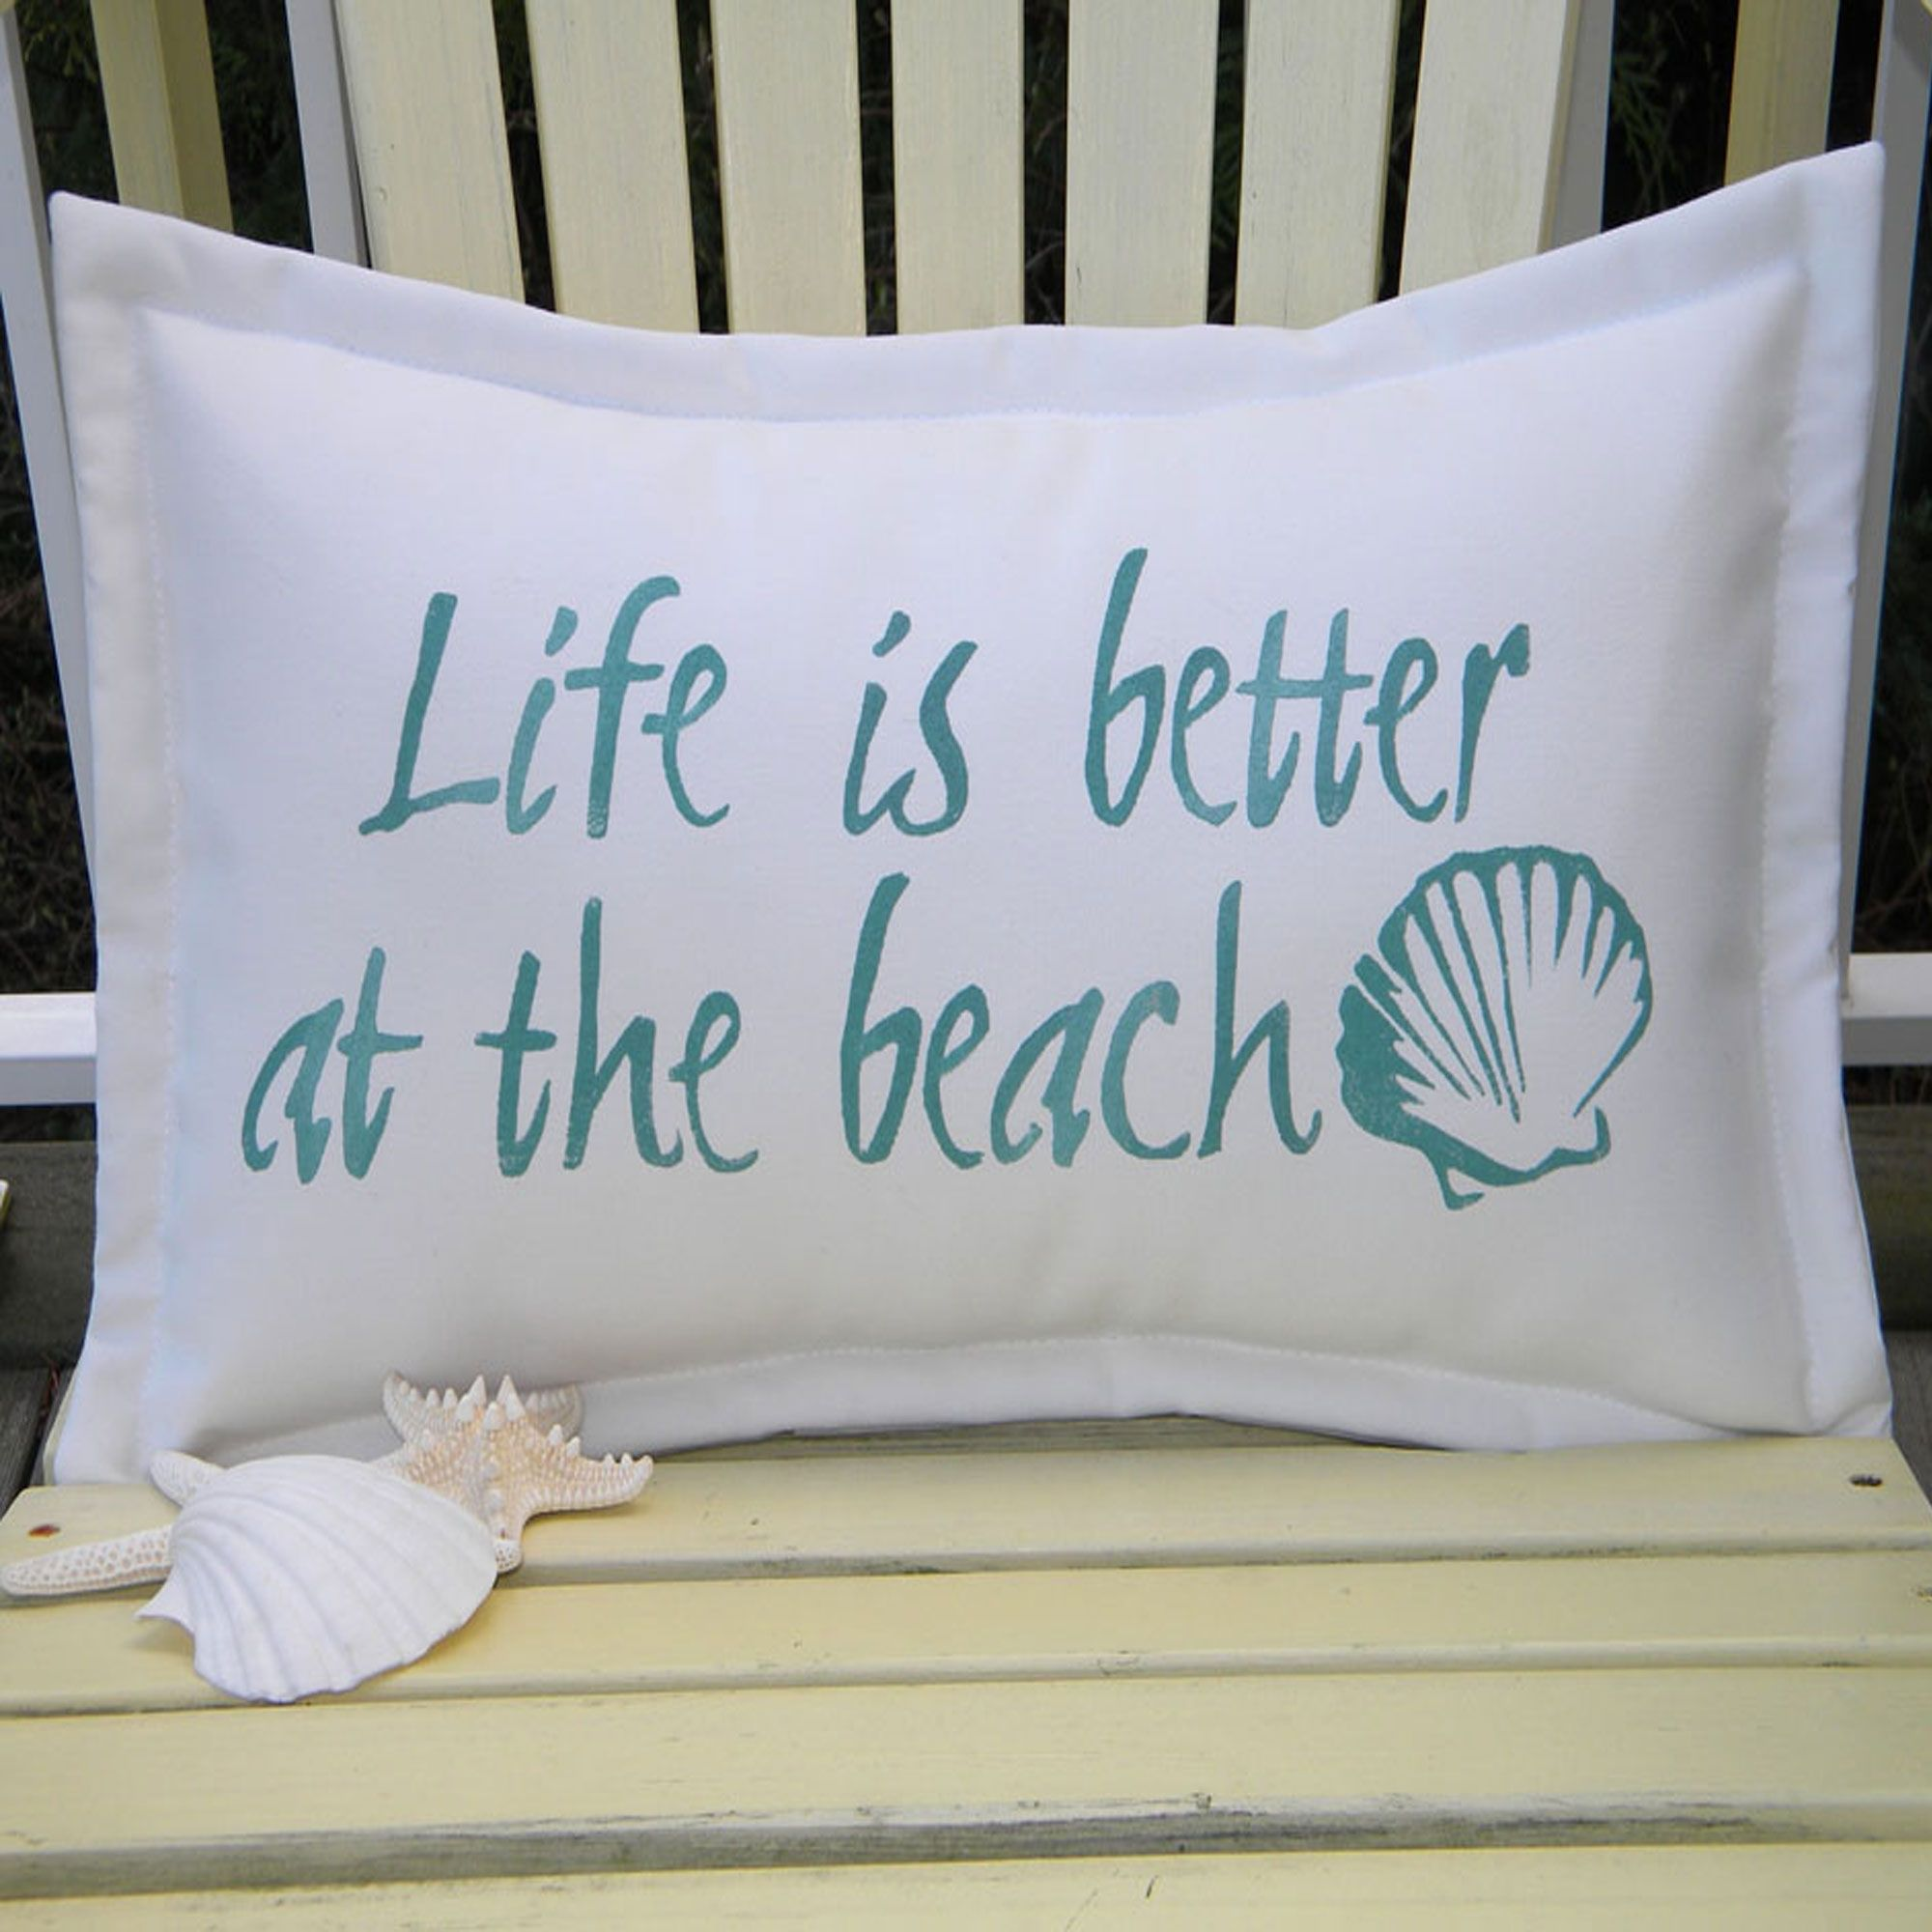 system beach flipillow jovo pillow vintage sandollarstarfish handmade jwrobel by pillows hooked themed cashmere